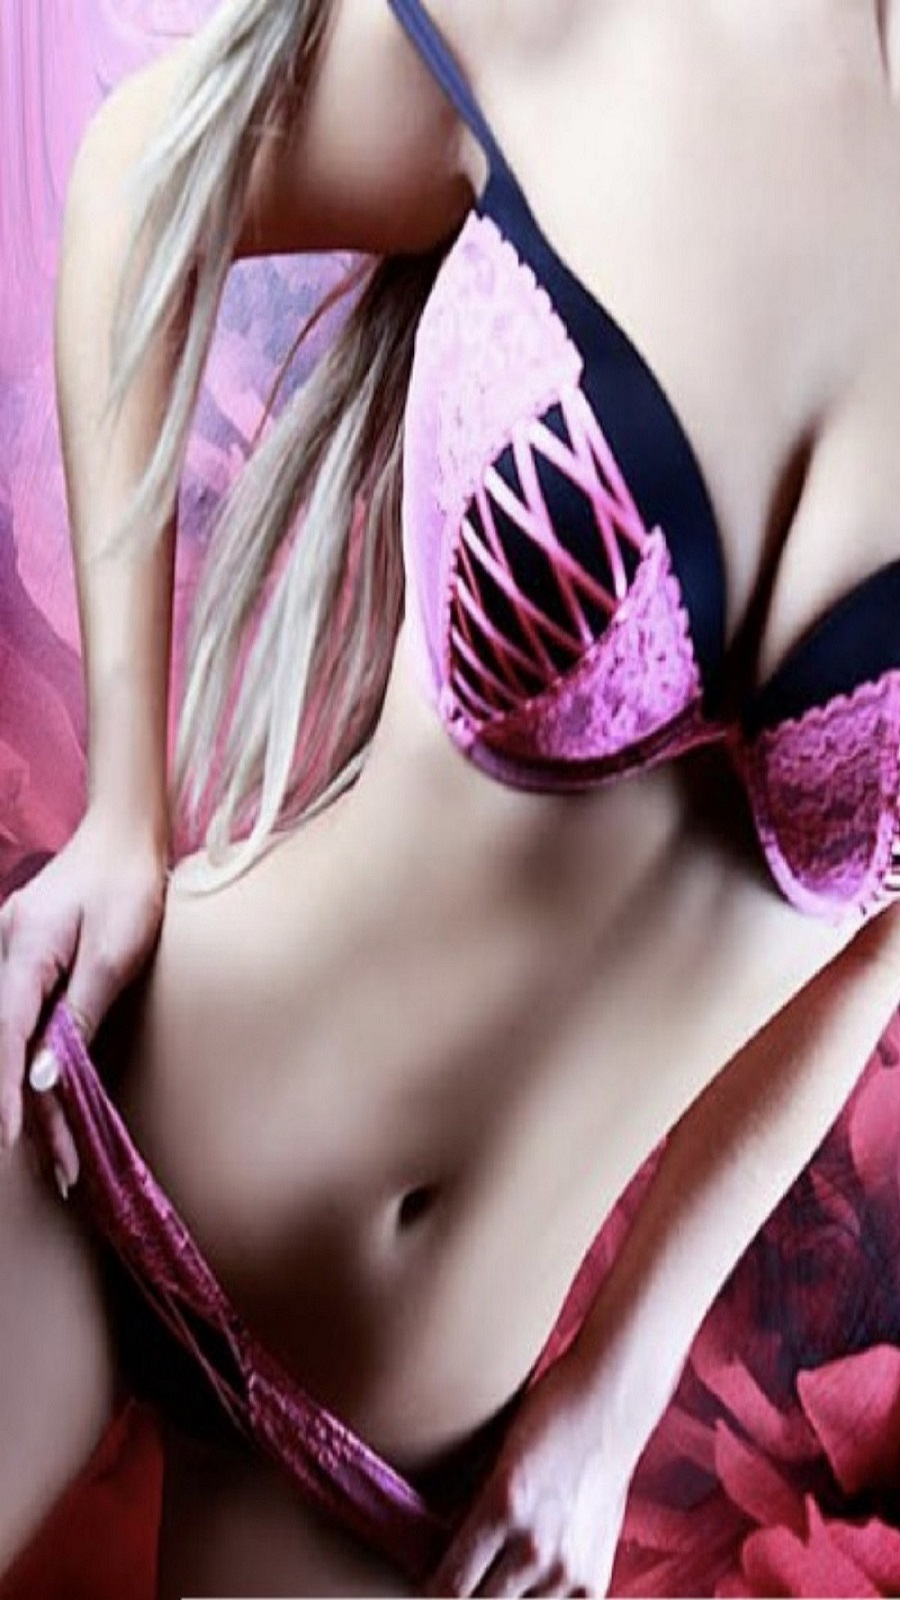 If you are looking for the perfect companion tonight give us a call on 07399733096 to book Katie for the best night of your life.